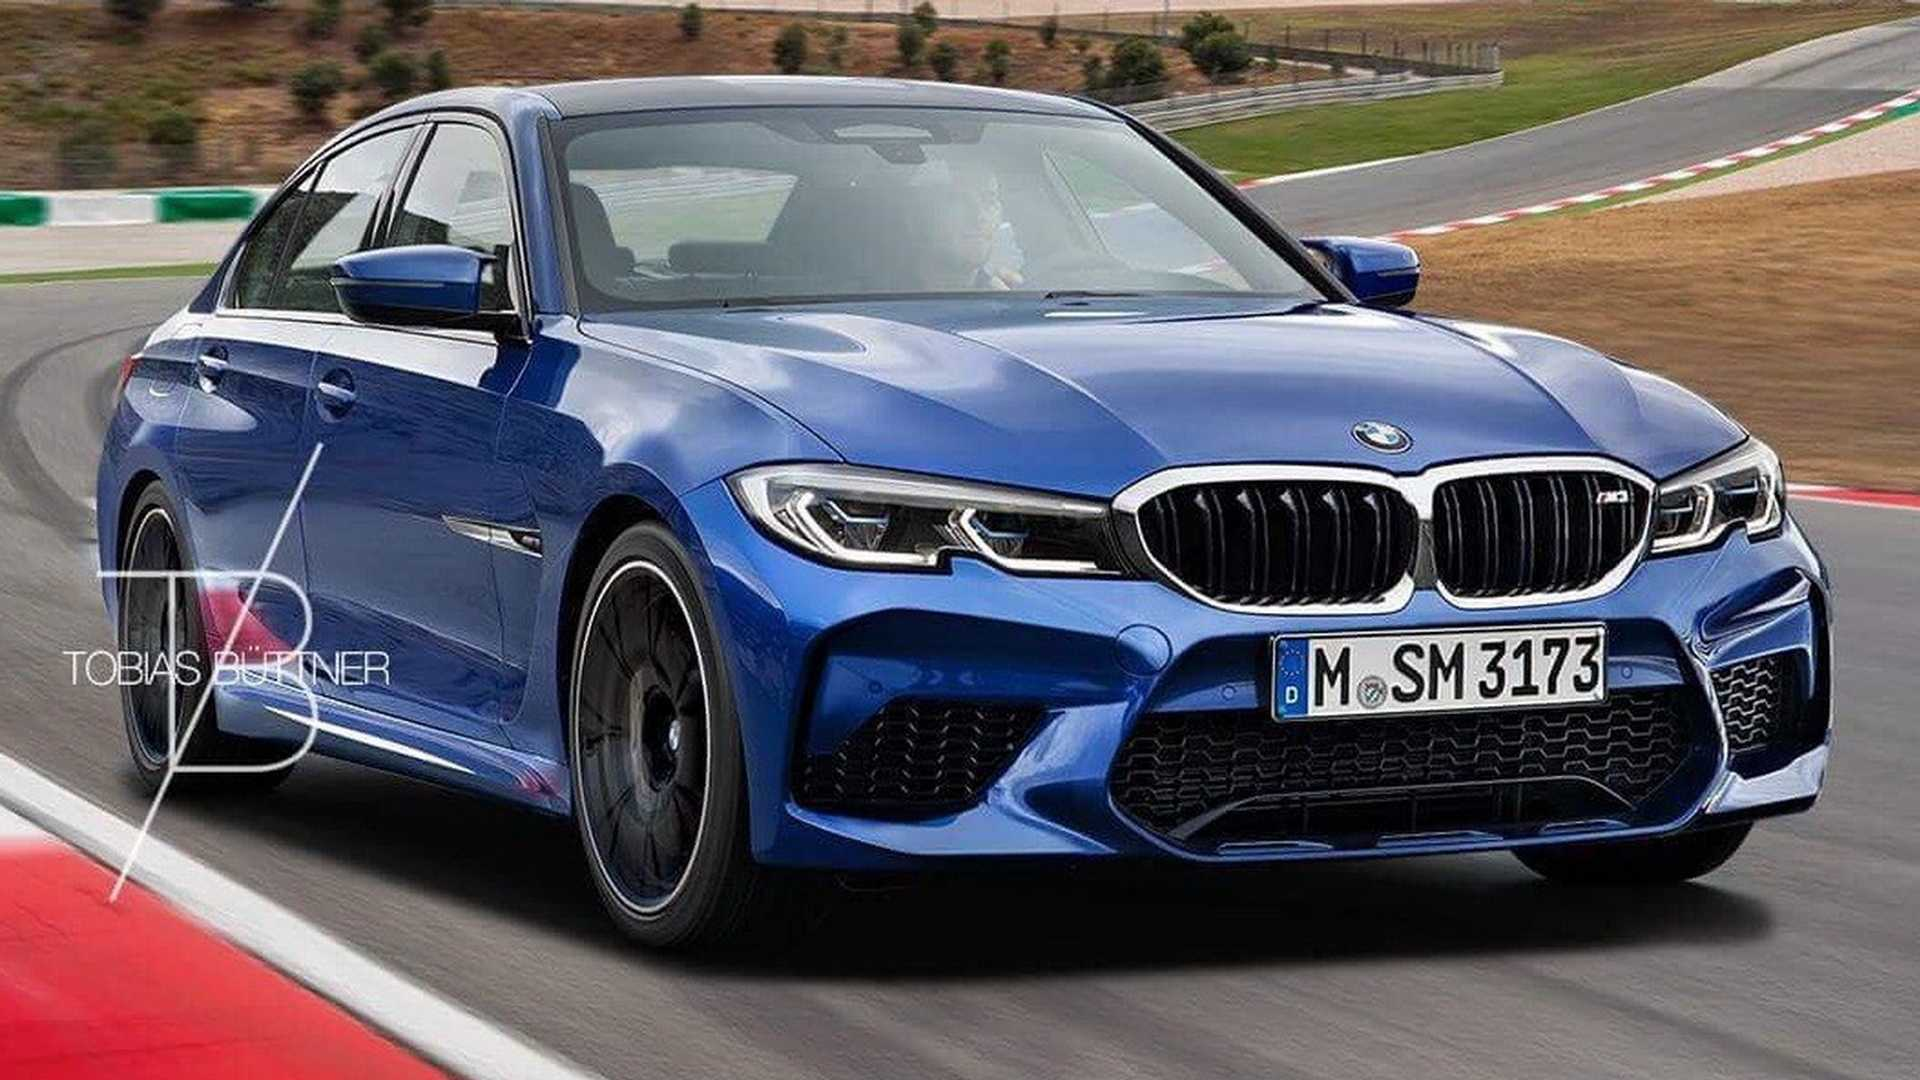 19 New When Does The 2020 Bmw M3 Come Out Performance And New Engine